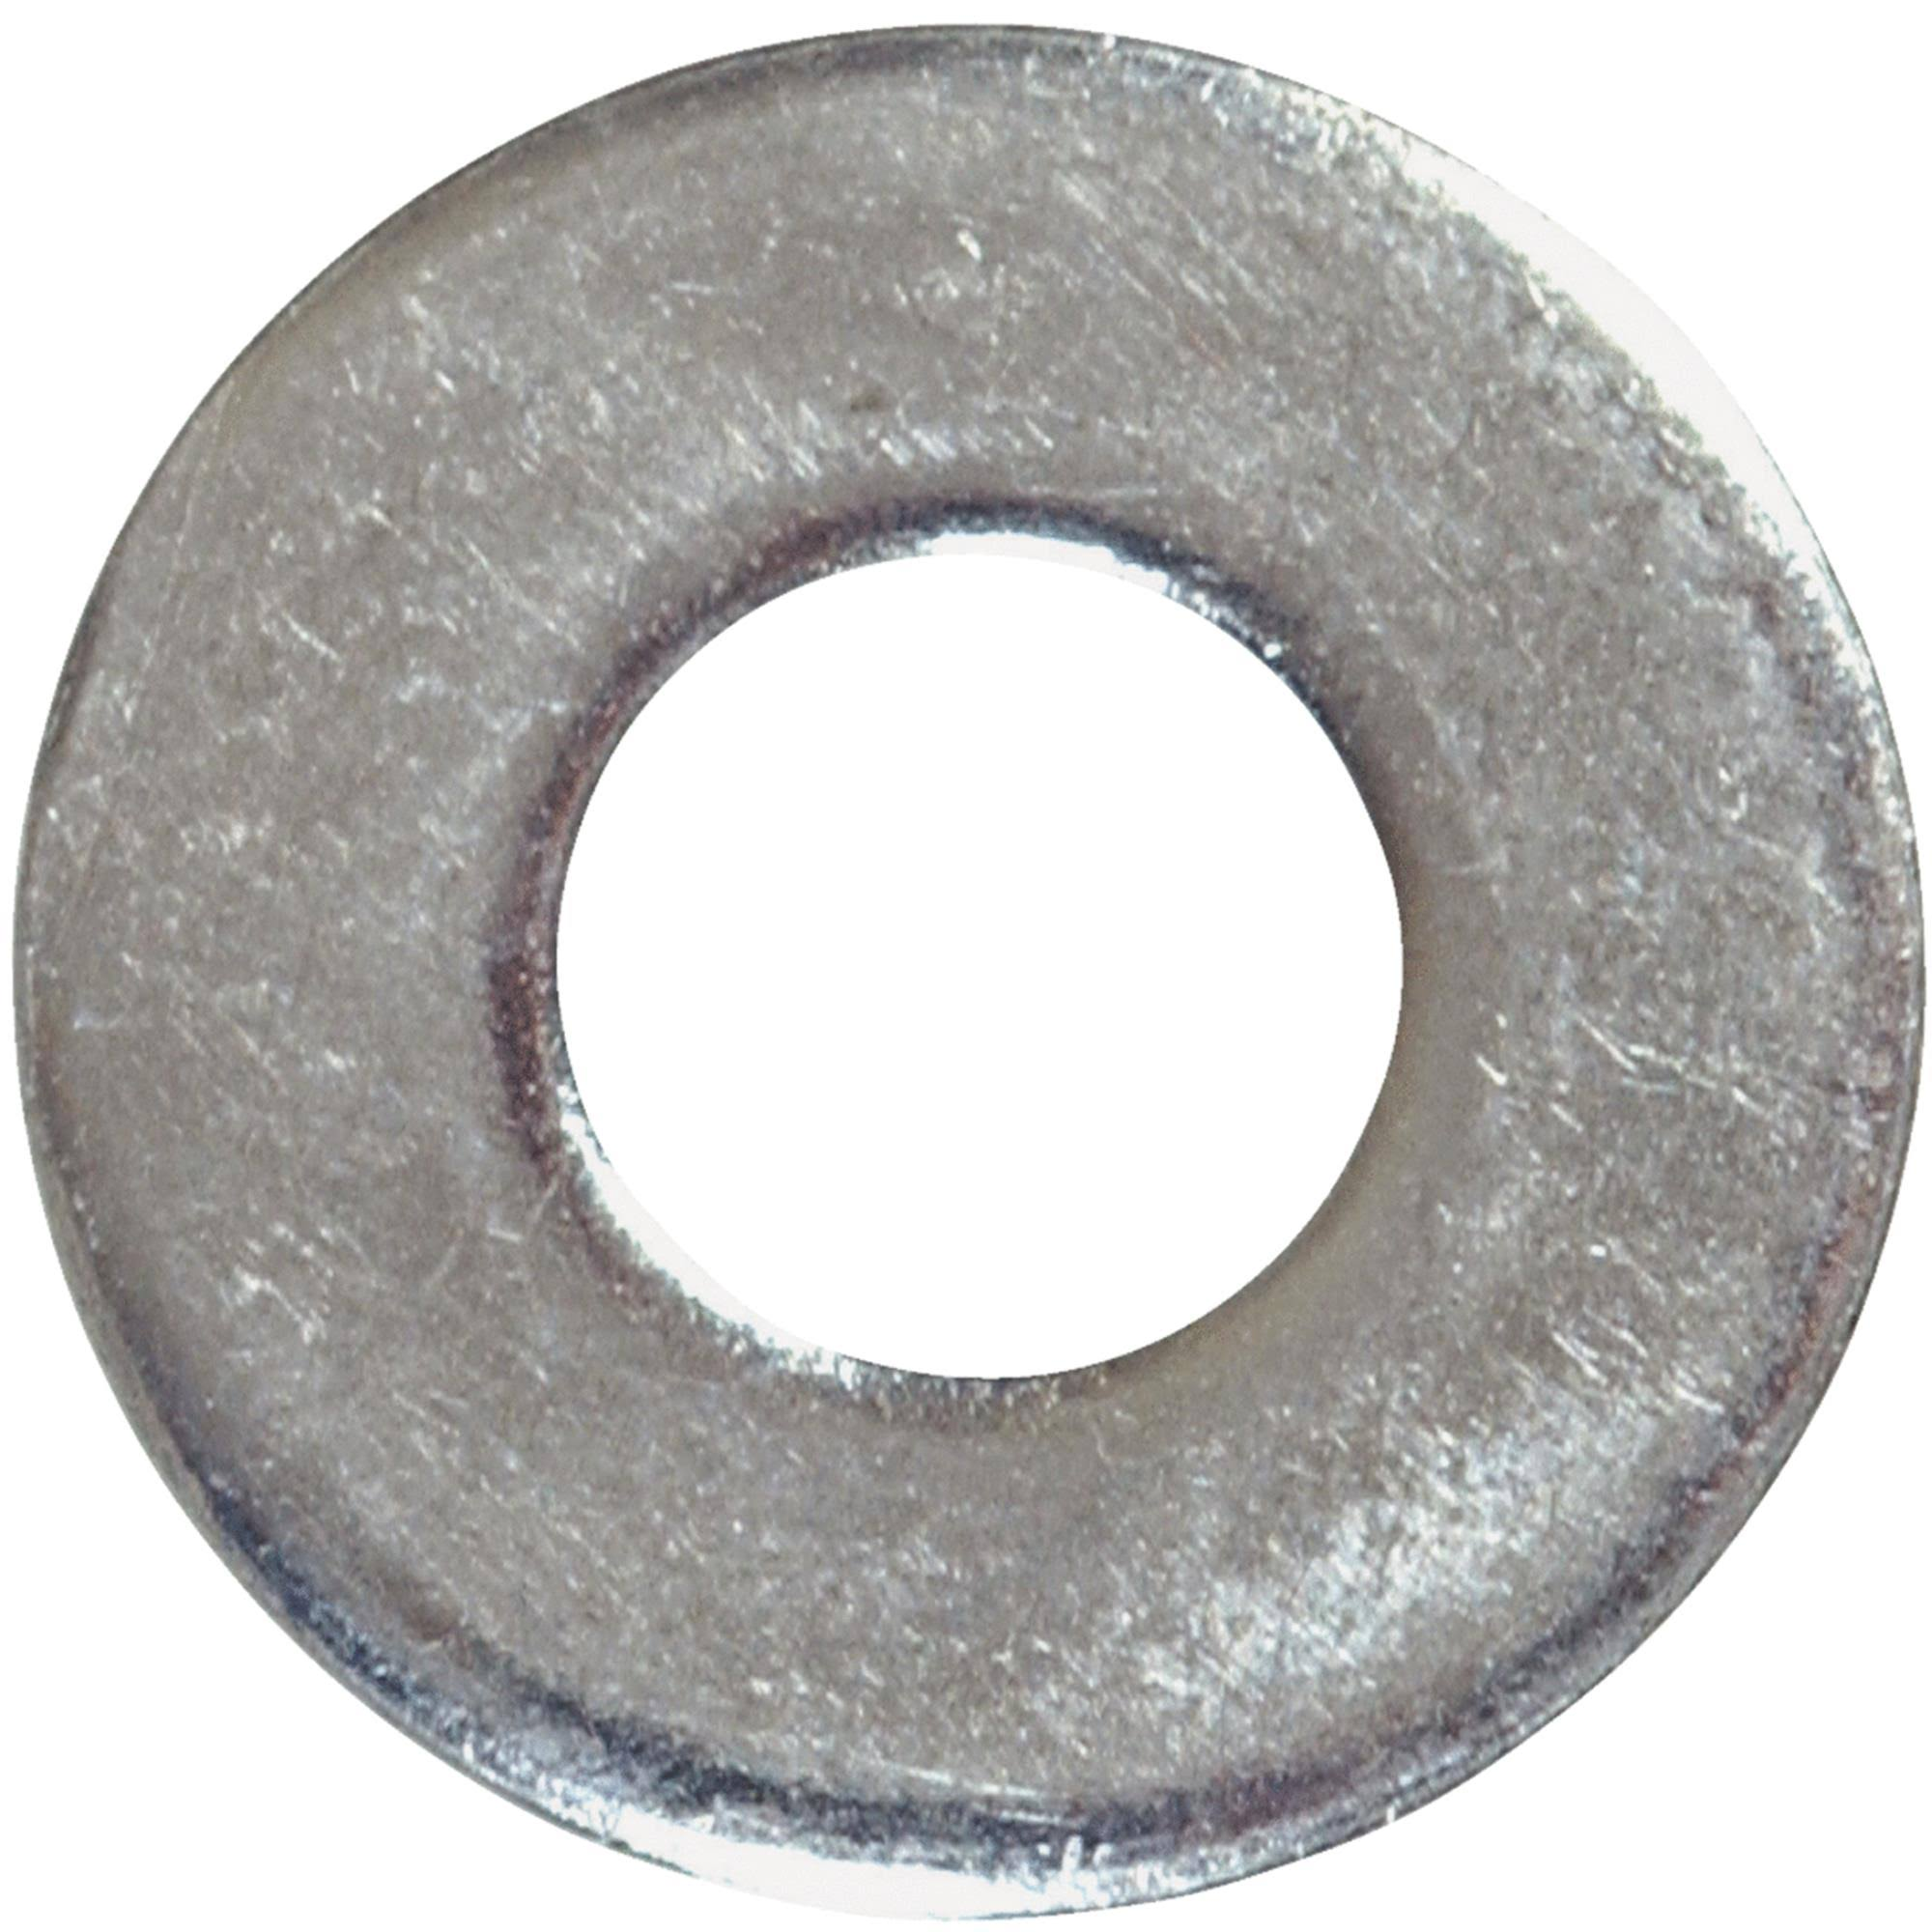 The Hillman Group Standard Flat Washers - Zinc Plated, #12, 100ct